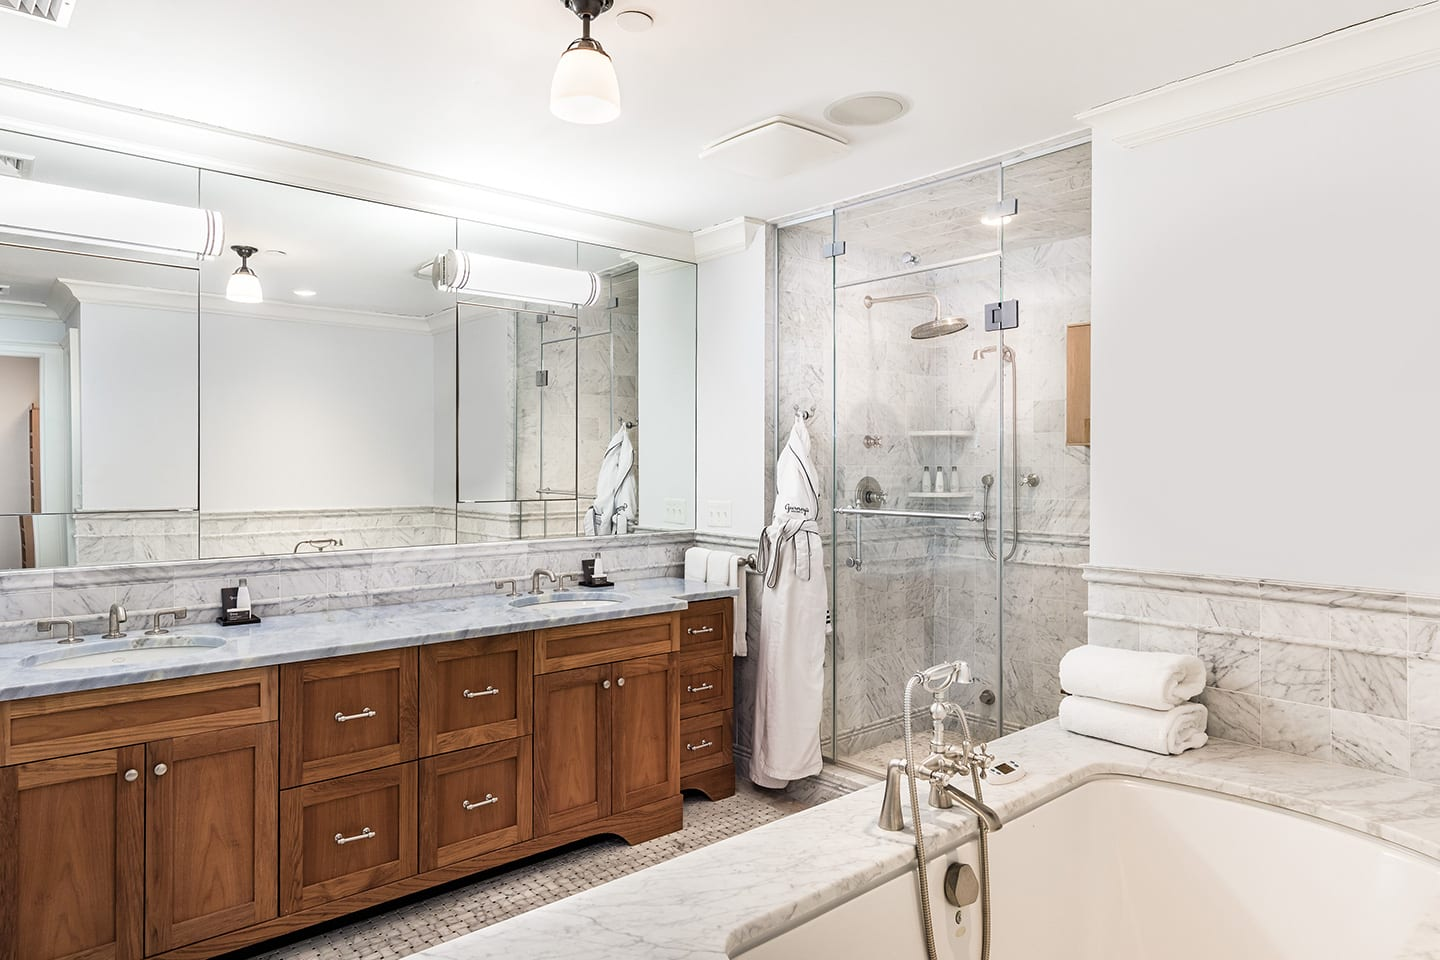 Hiltop 10 Master Bathroom with his and hers sinks, marble detailing, a walk in shower and a bathtub